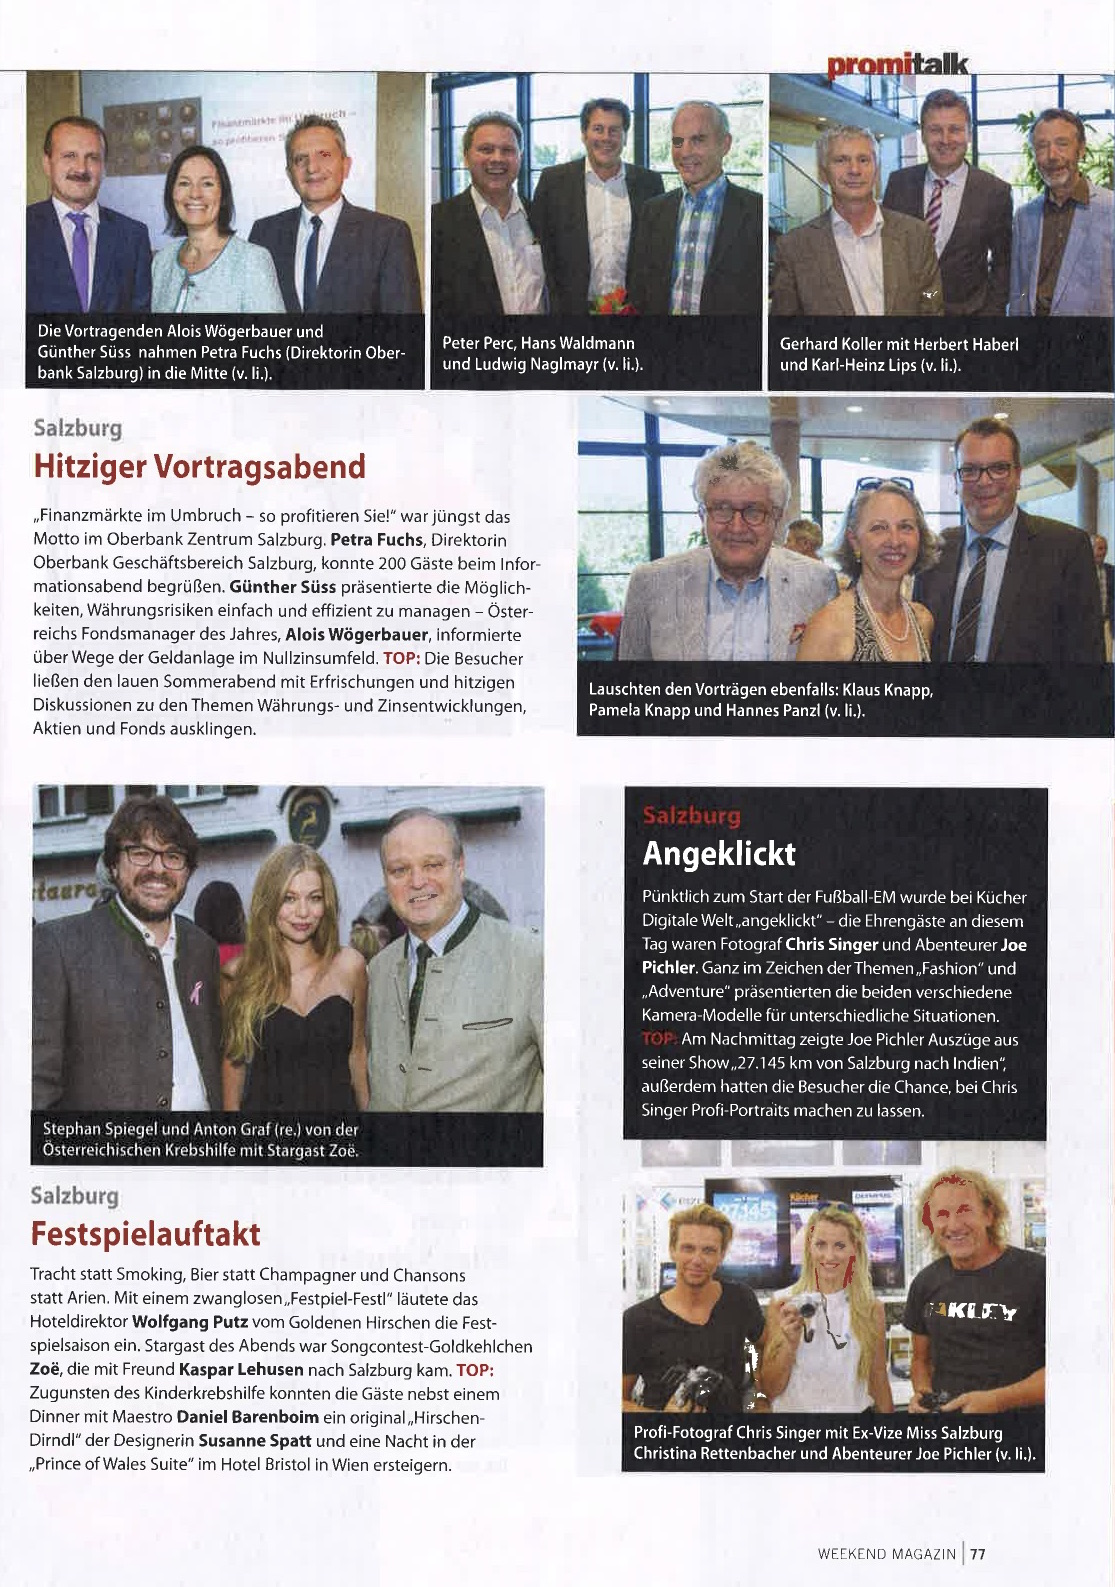 Event-Bericht im Weekend Magazin, 08. Juli 2016